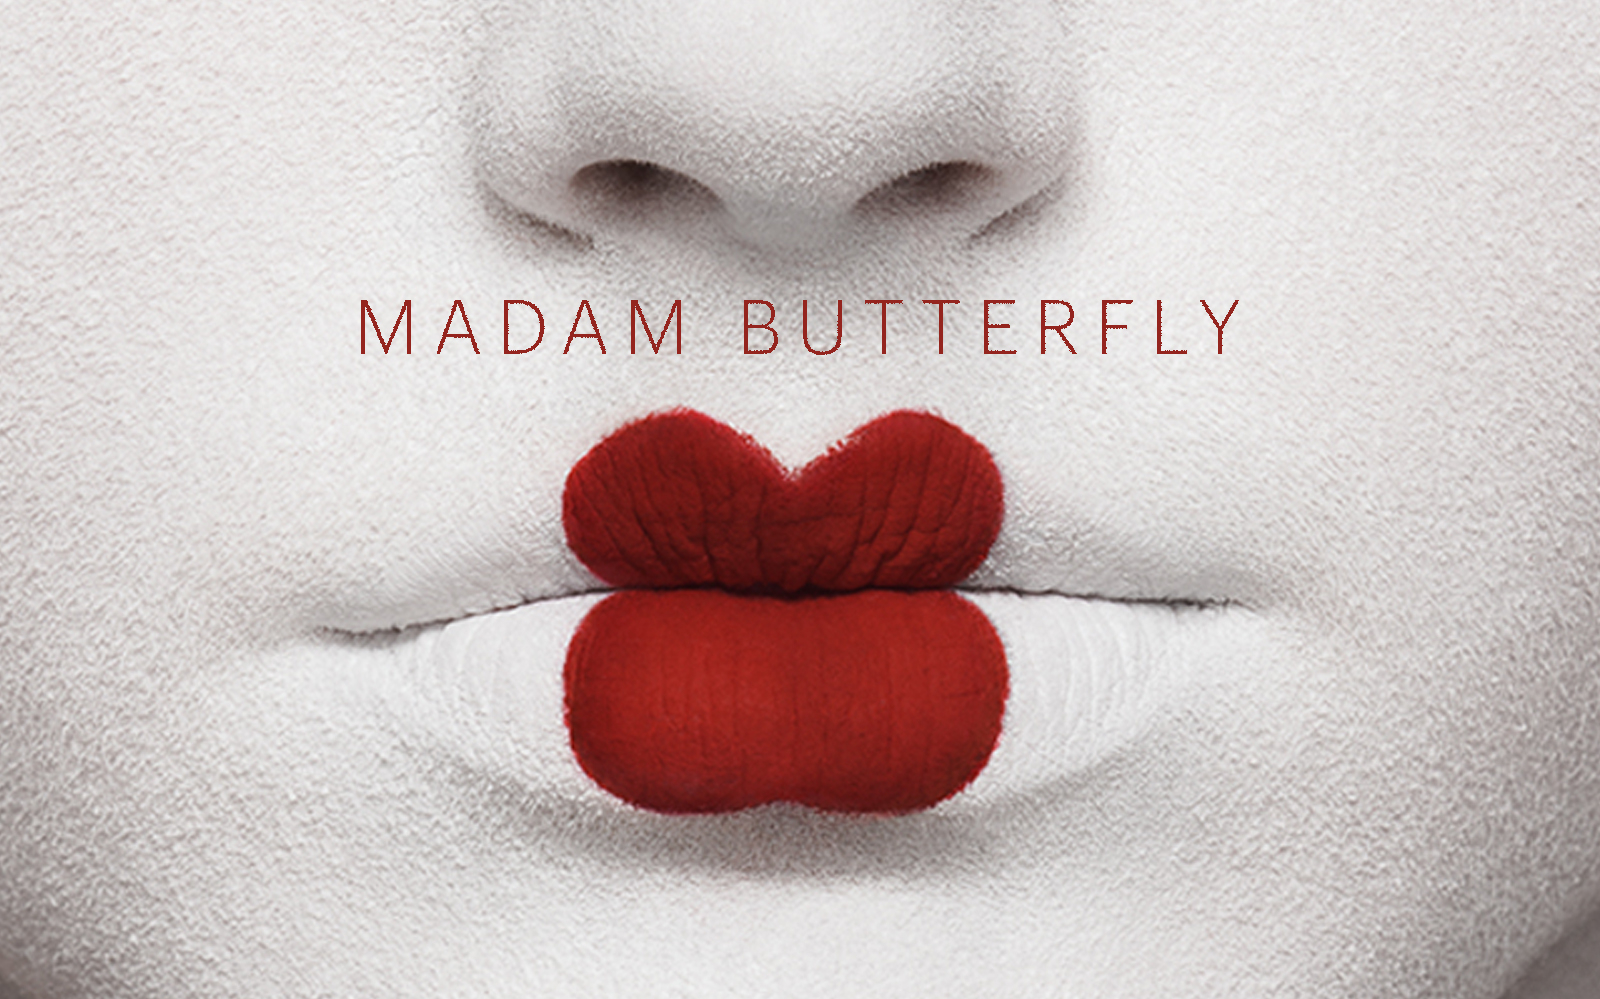 D31fa06e b553 44eb 8bab a306e555dea0 10557 london madam butterfly 01